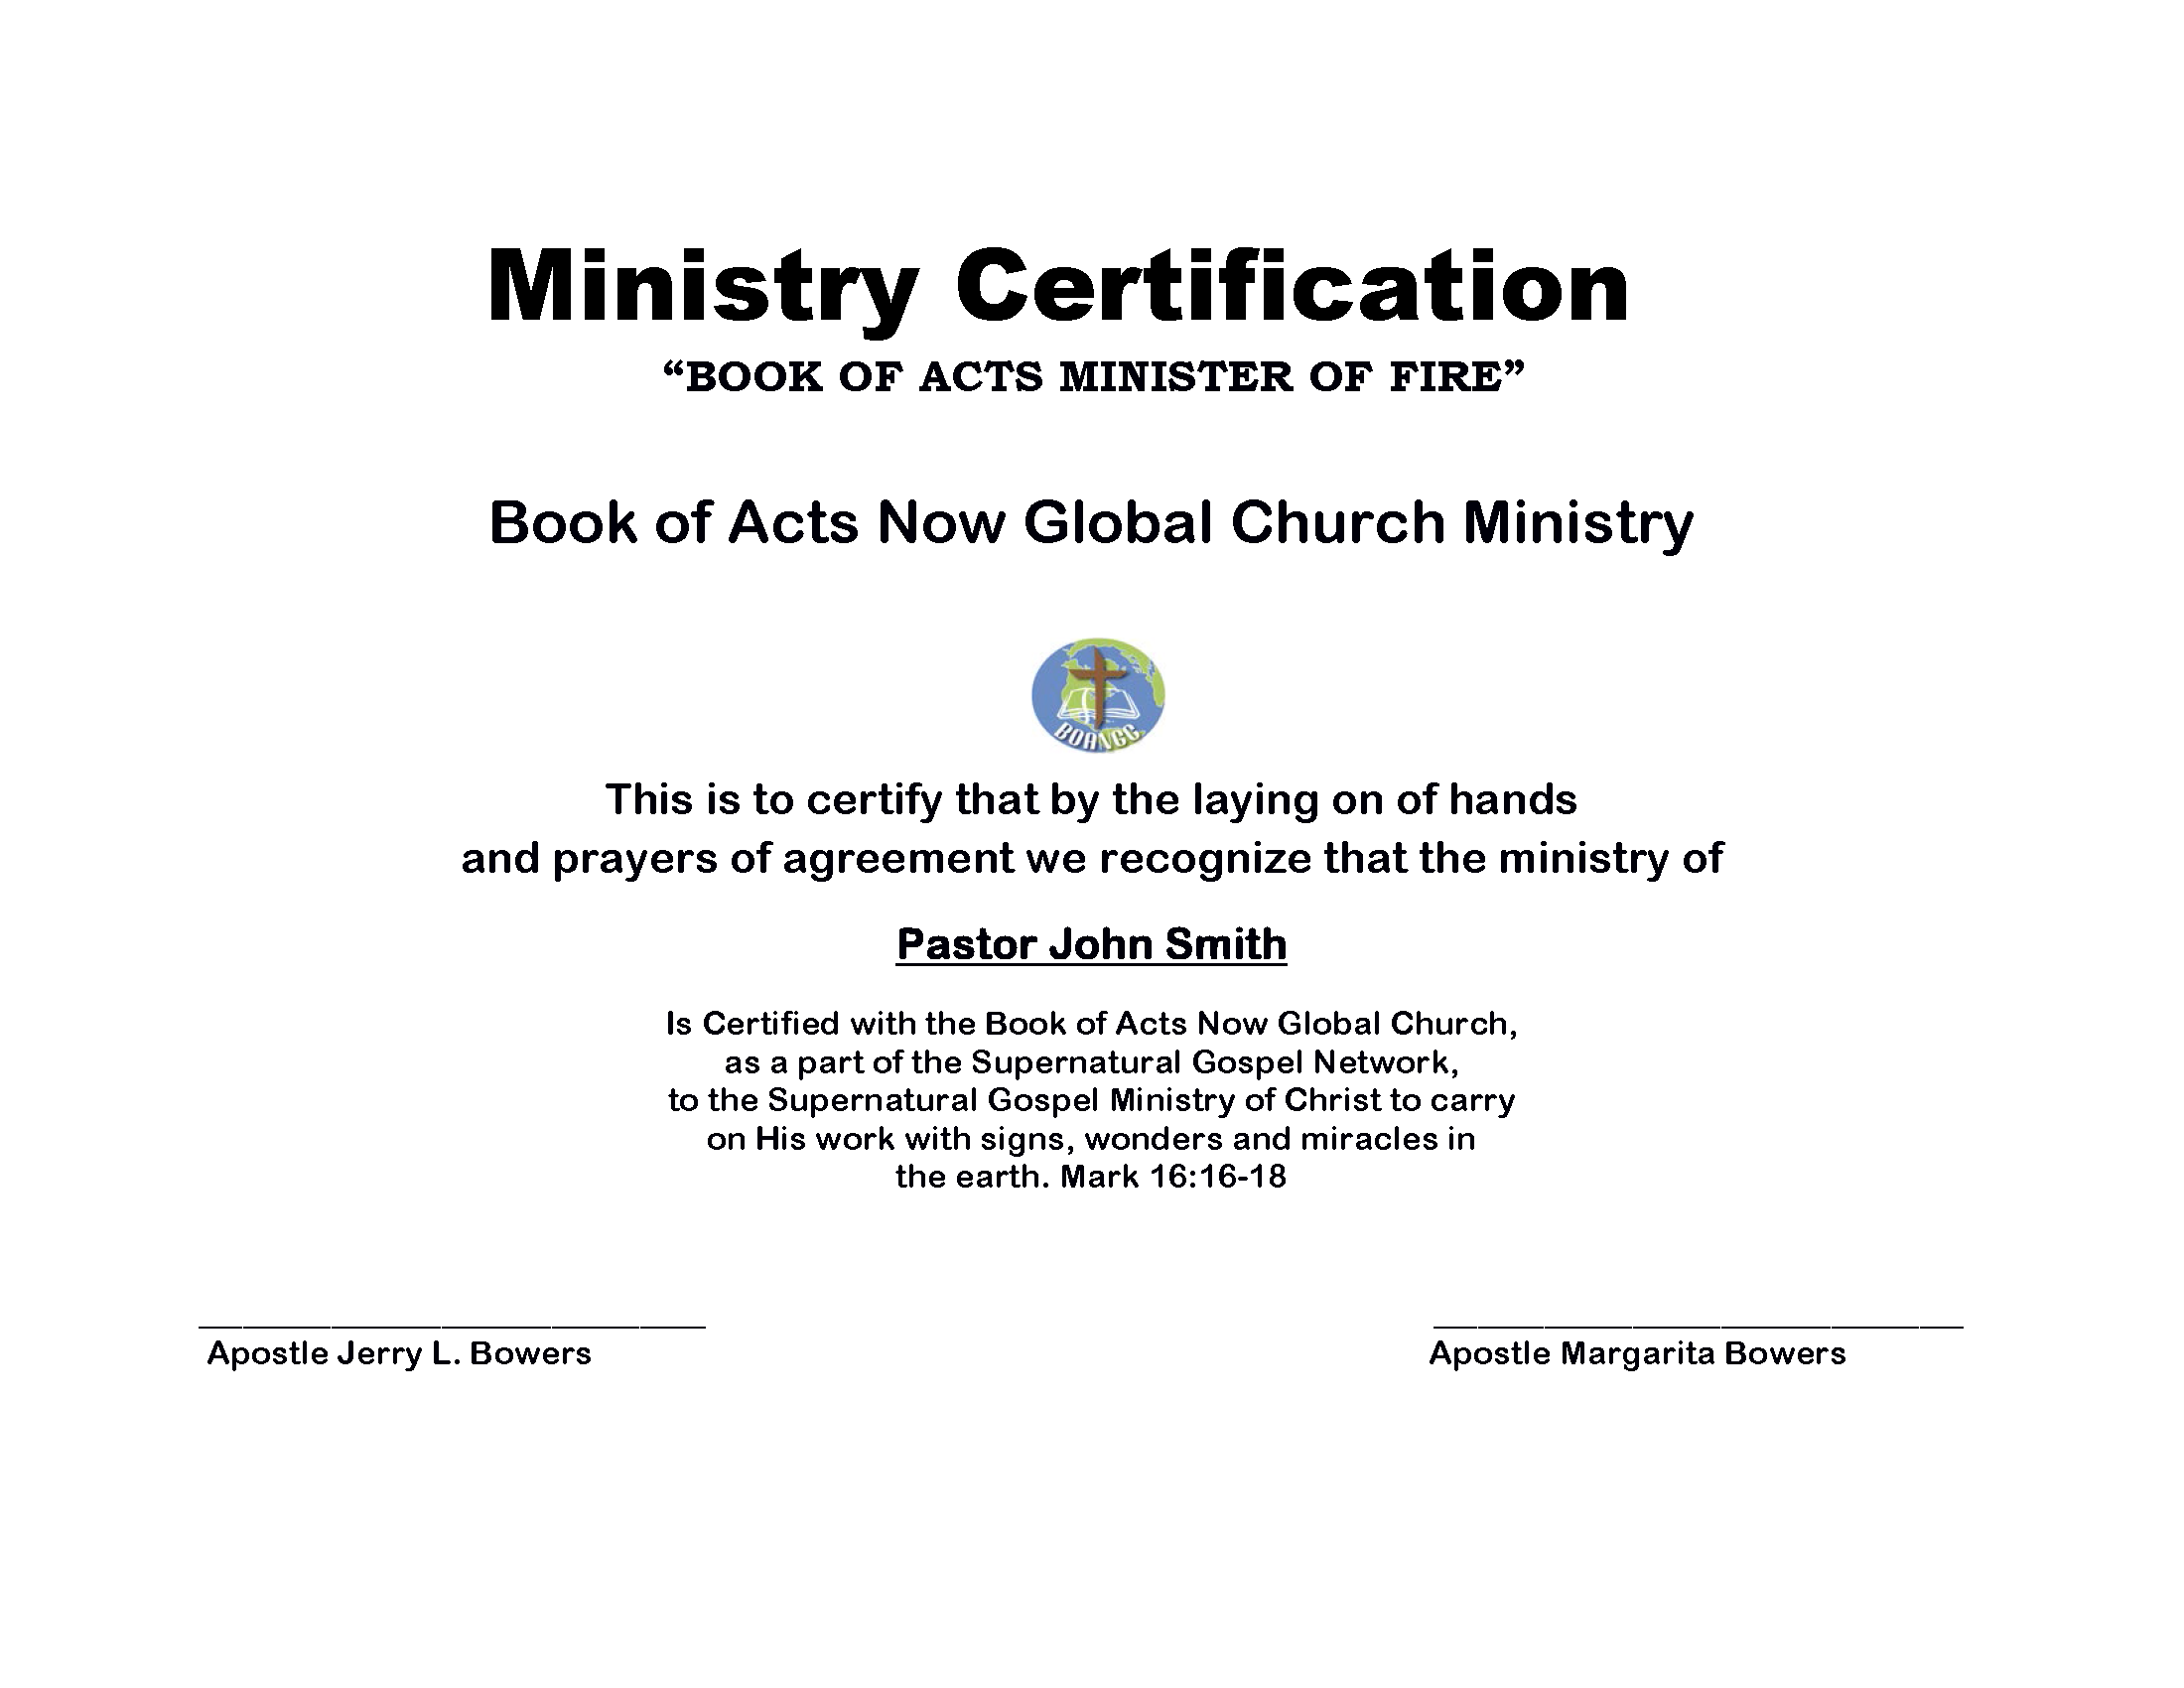 Ministry Affiliation – Book of Acts Now Global Church